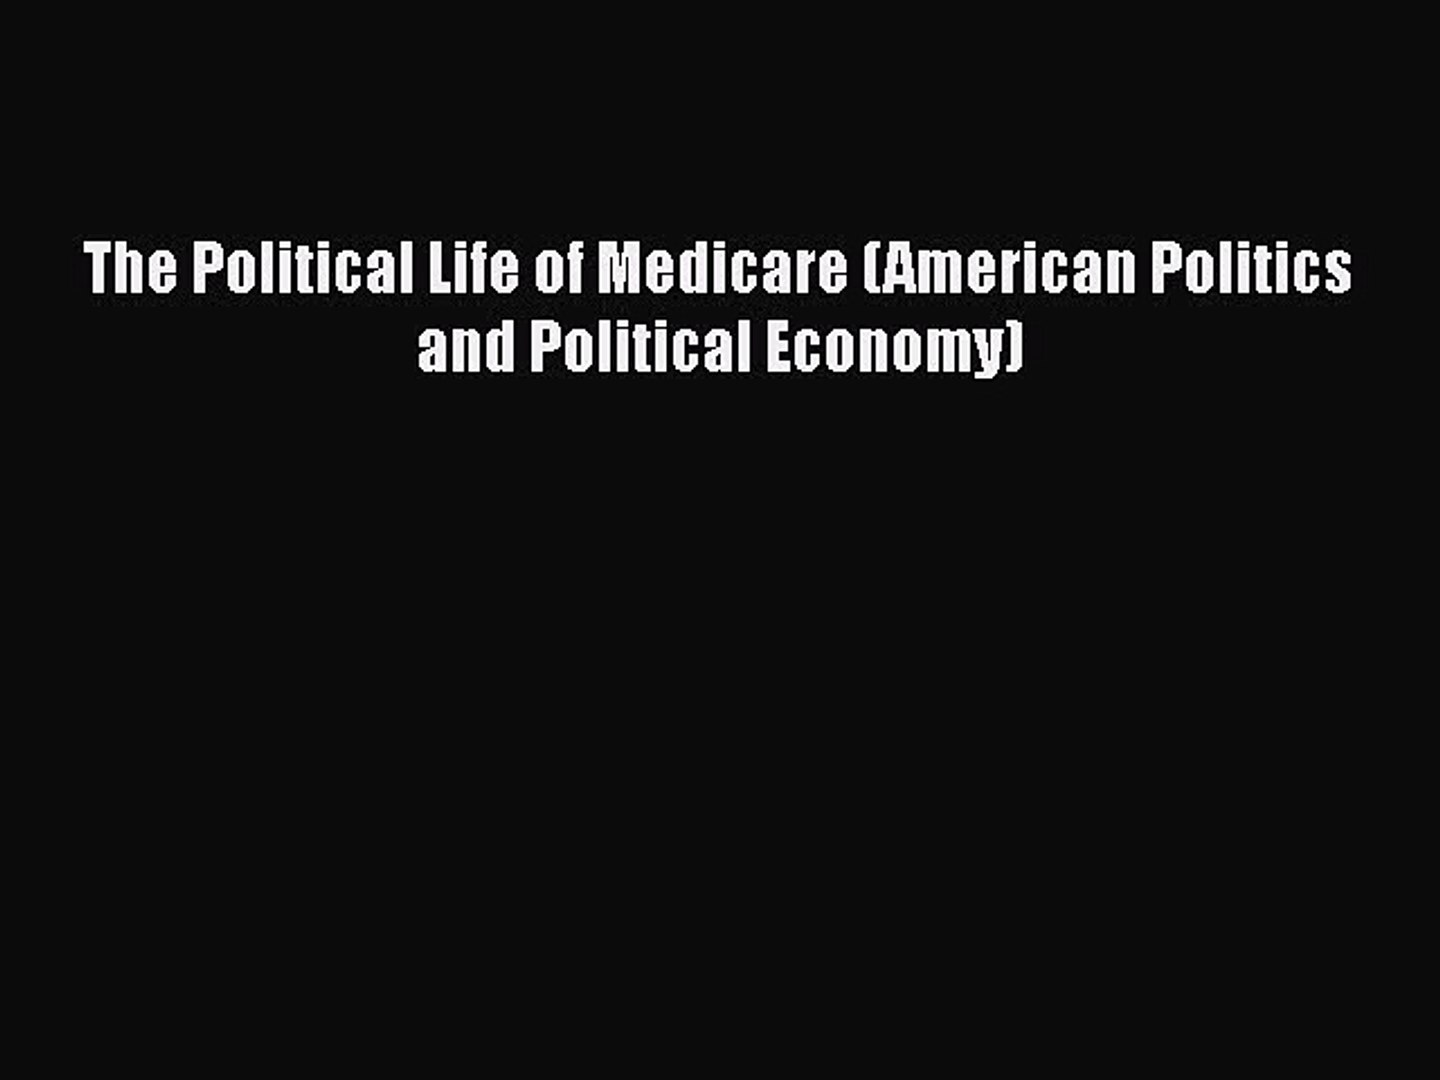 Read The Political Life of Medicare (American Politics and Political Economy) Ebook Free